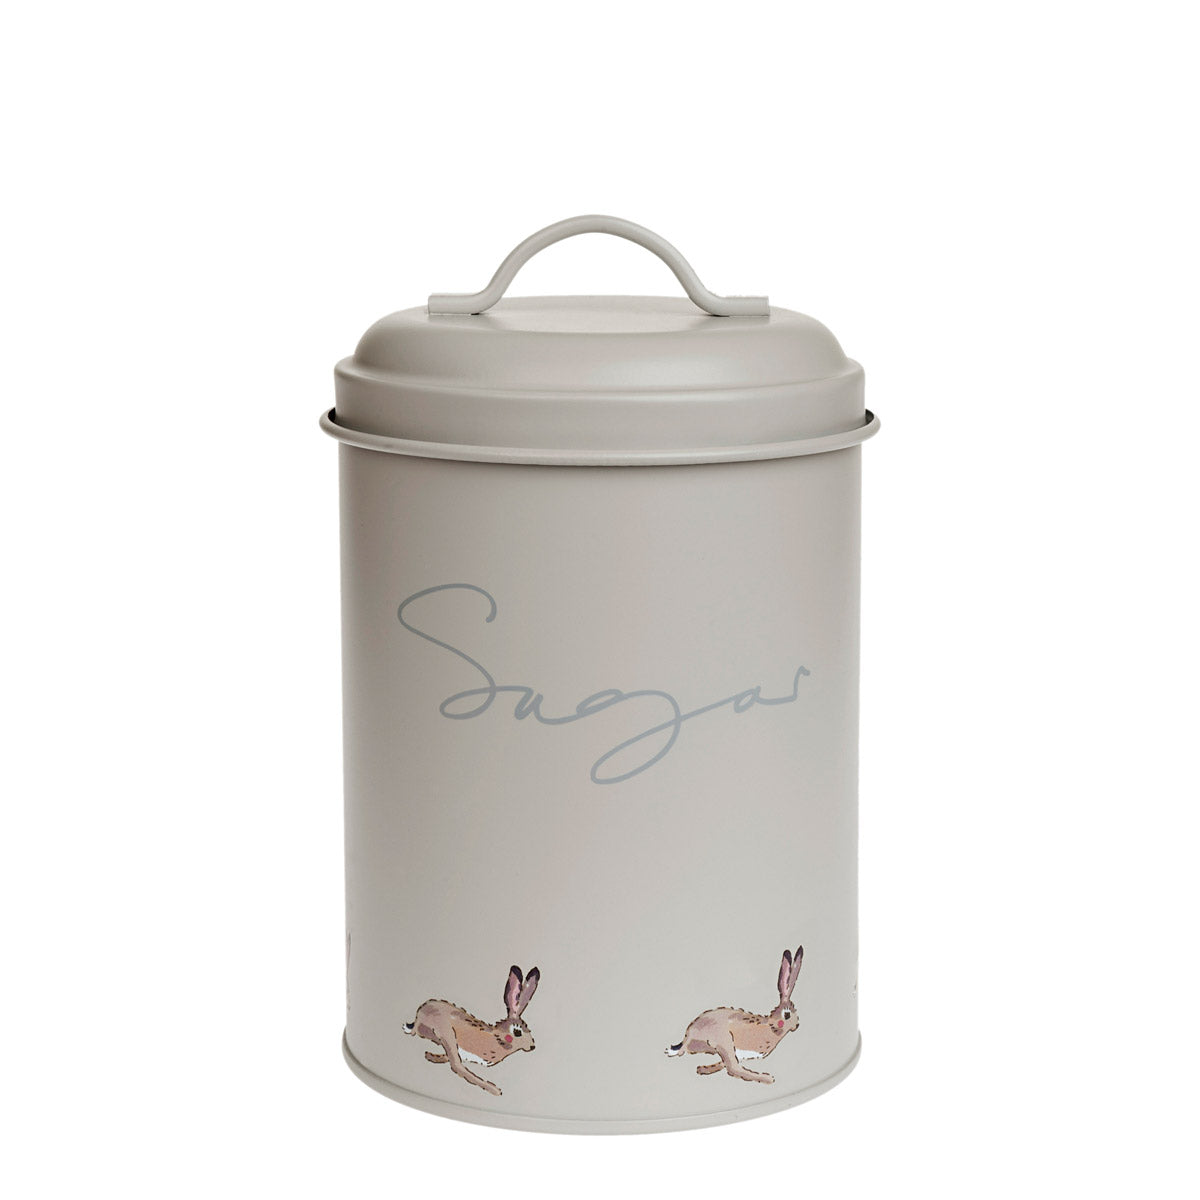 Hare Storage Tins - Set of 3